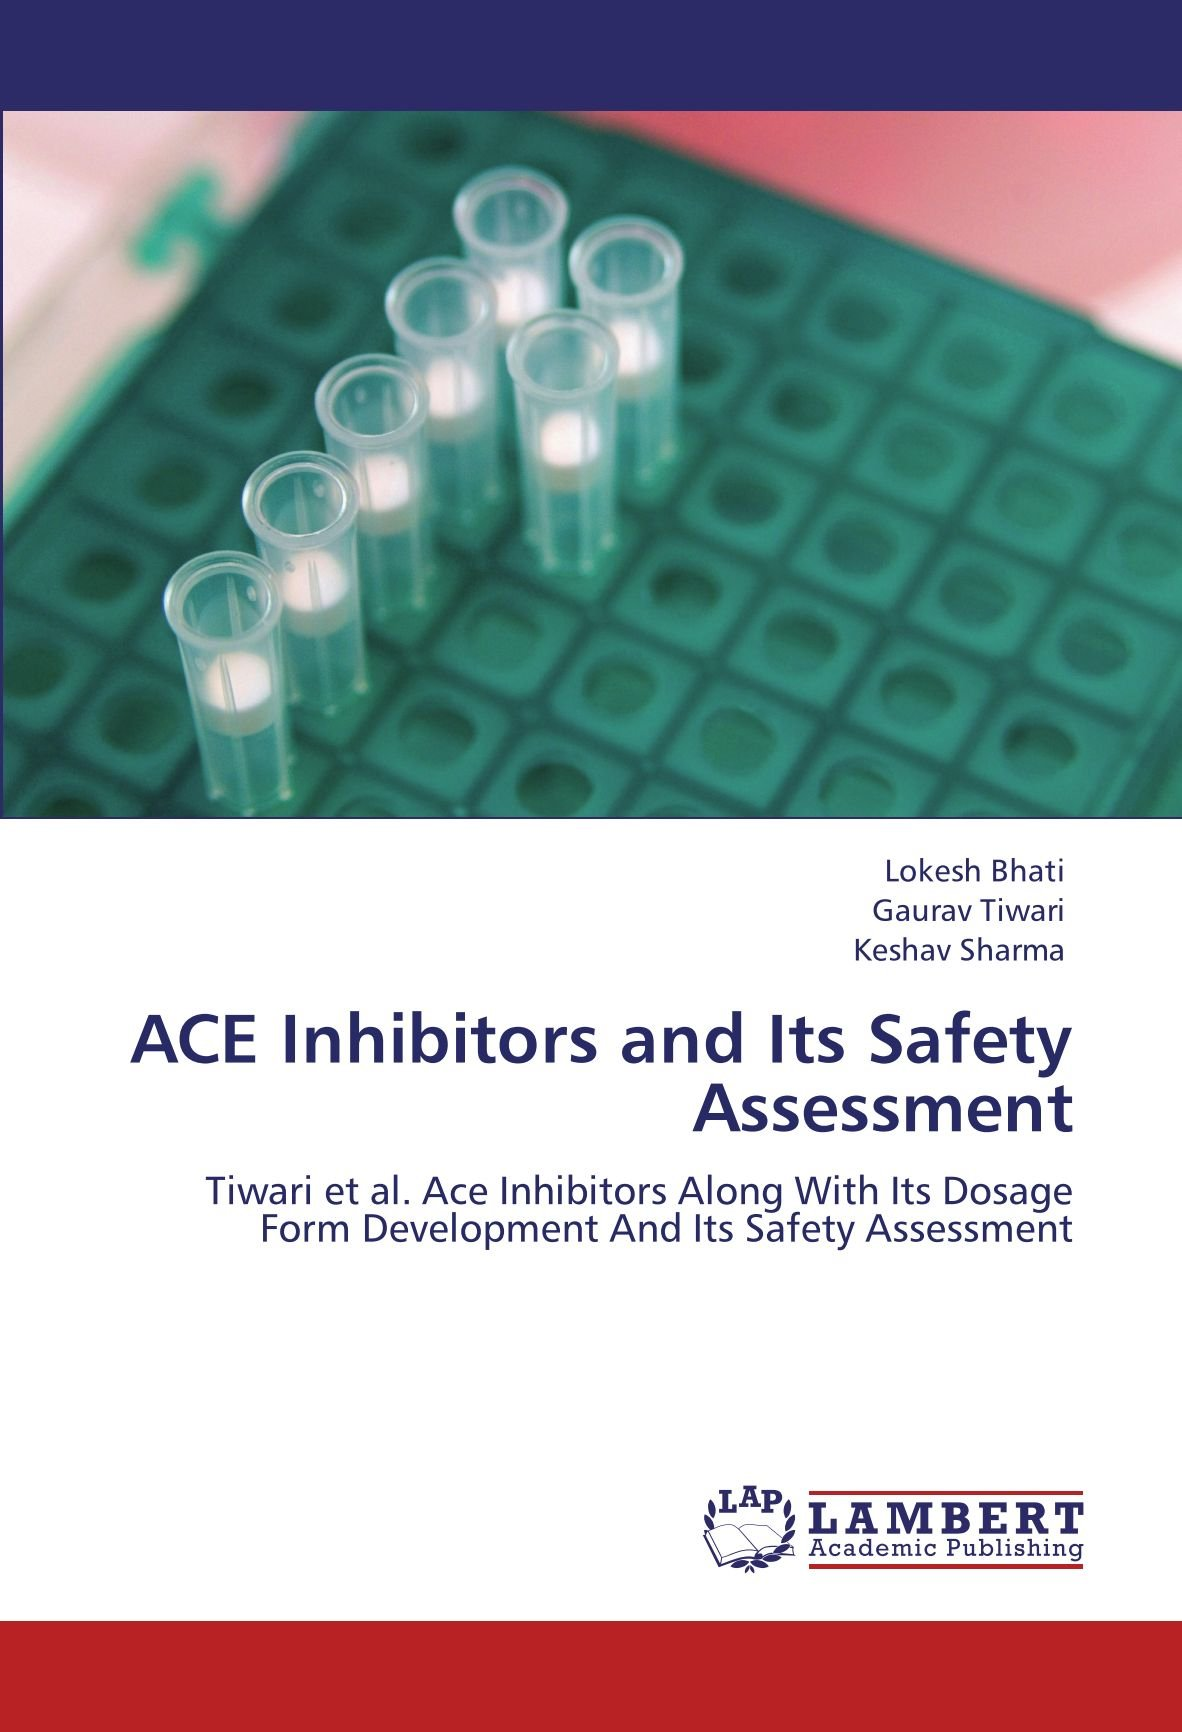 ACE Inhibitors and Its Safety Assessment: Tiwari et al. Ace Inhibitors Along With Its Dosage Form Development And Its Safety Assessment pdf